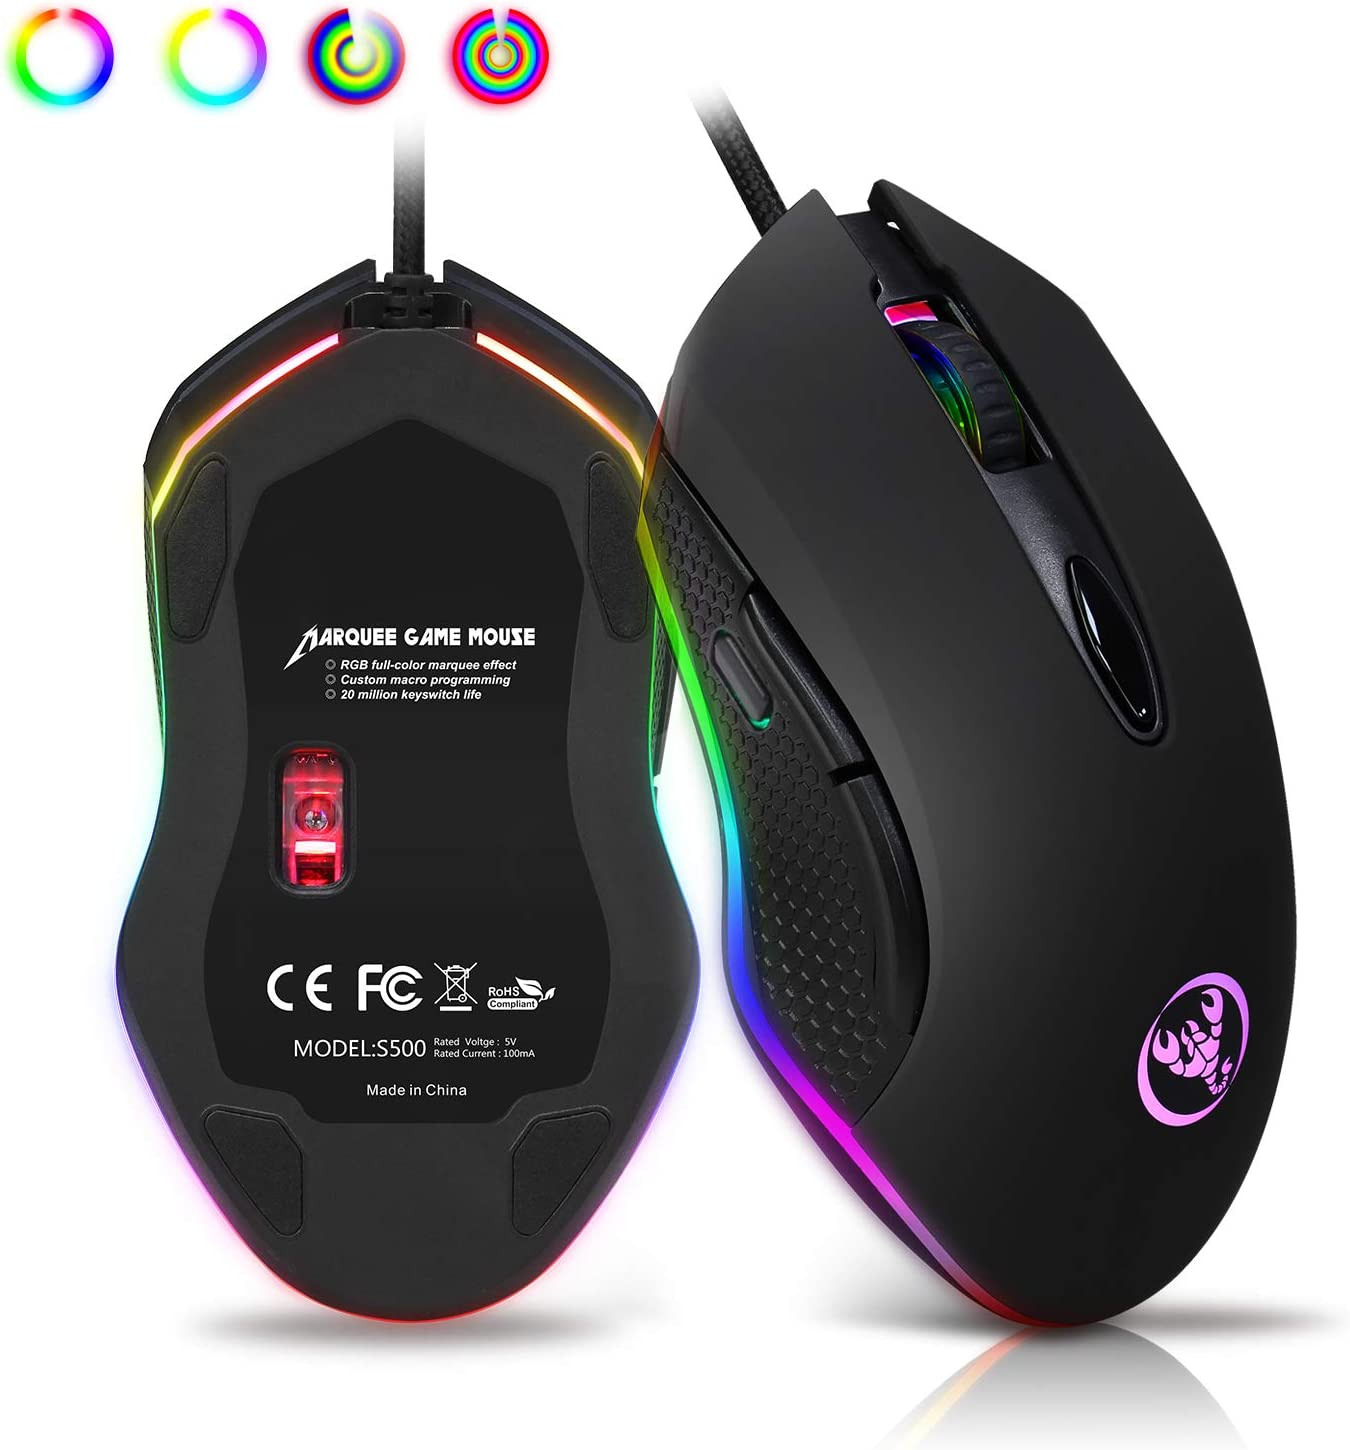 ANEWISH RGB Wired Gaming Mouse,6 Programmable Buttons,4 DPI Adjustable,Plug and Play, Ergonomic Optical Gaming Mice for PC,Computer,Laptop,Desktop,Windows